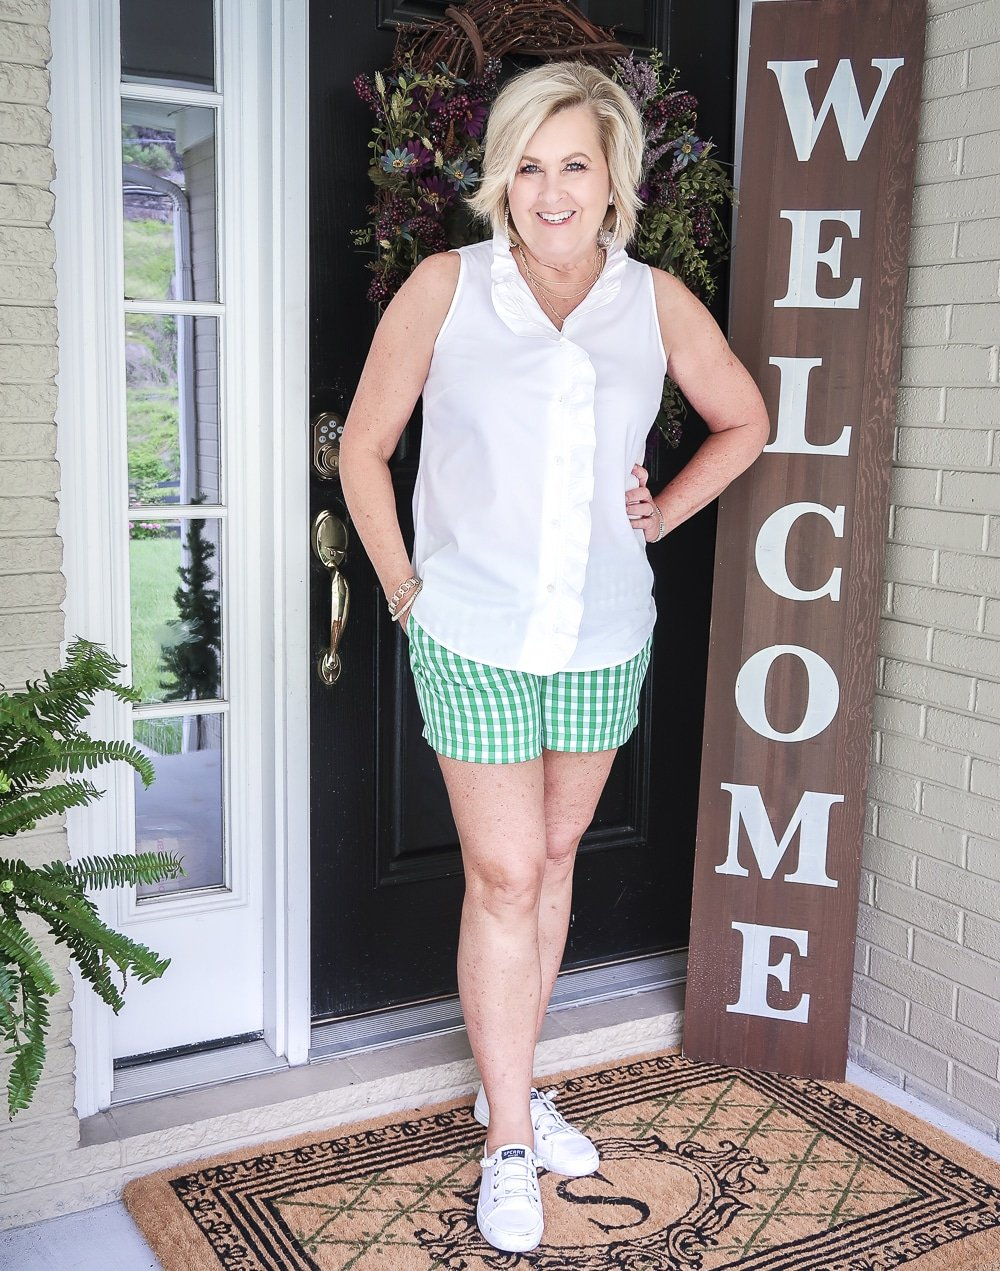 FASHION BLOGGER 50 Is Not Old wearing a sleeveless top with a ruffled placket and green gingham shorts with a pair of white slip on sneakers.